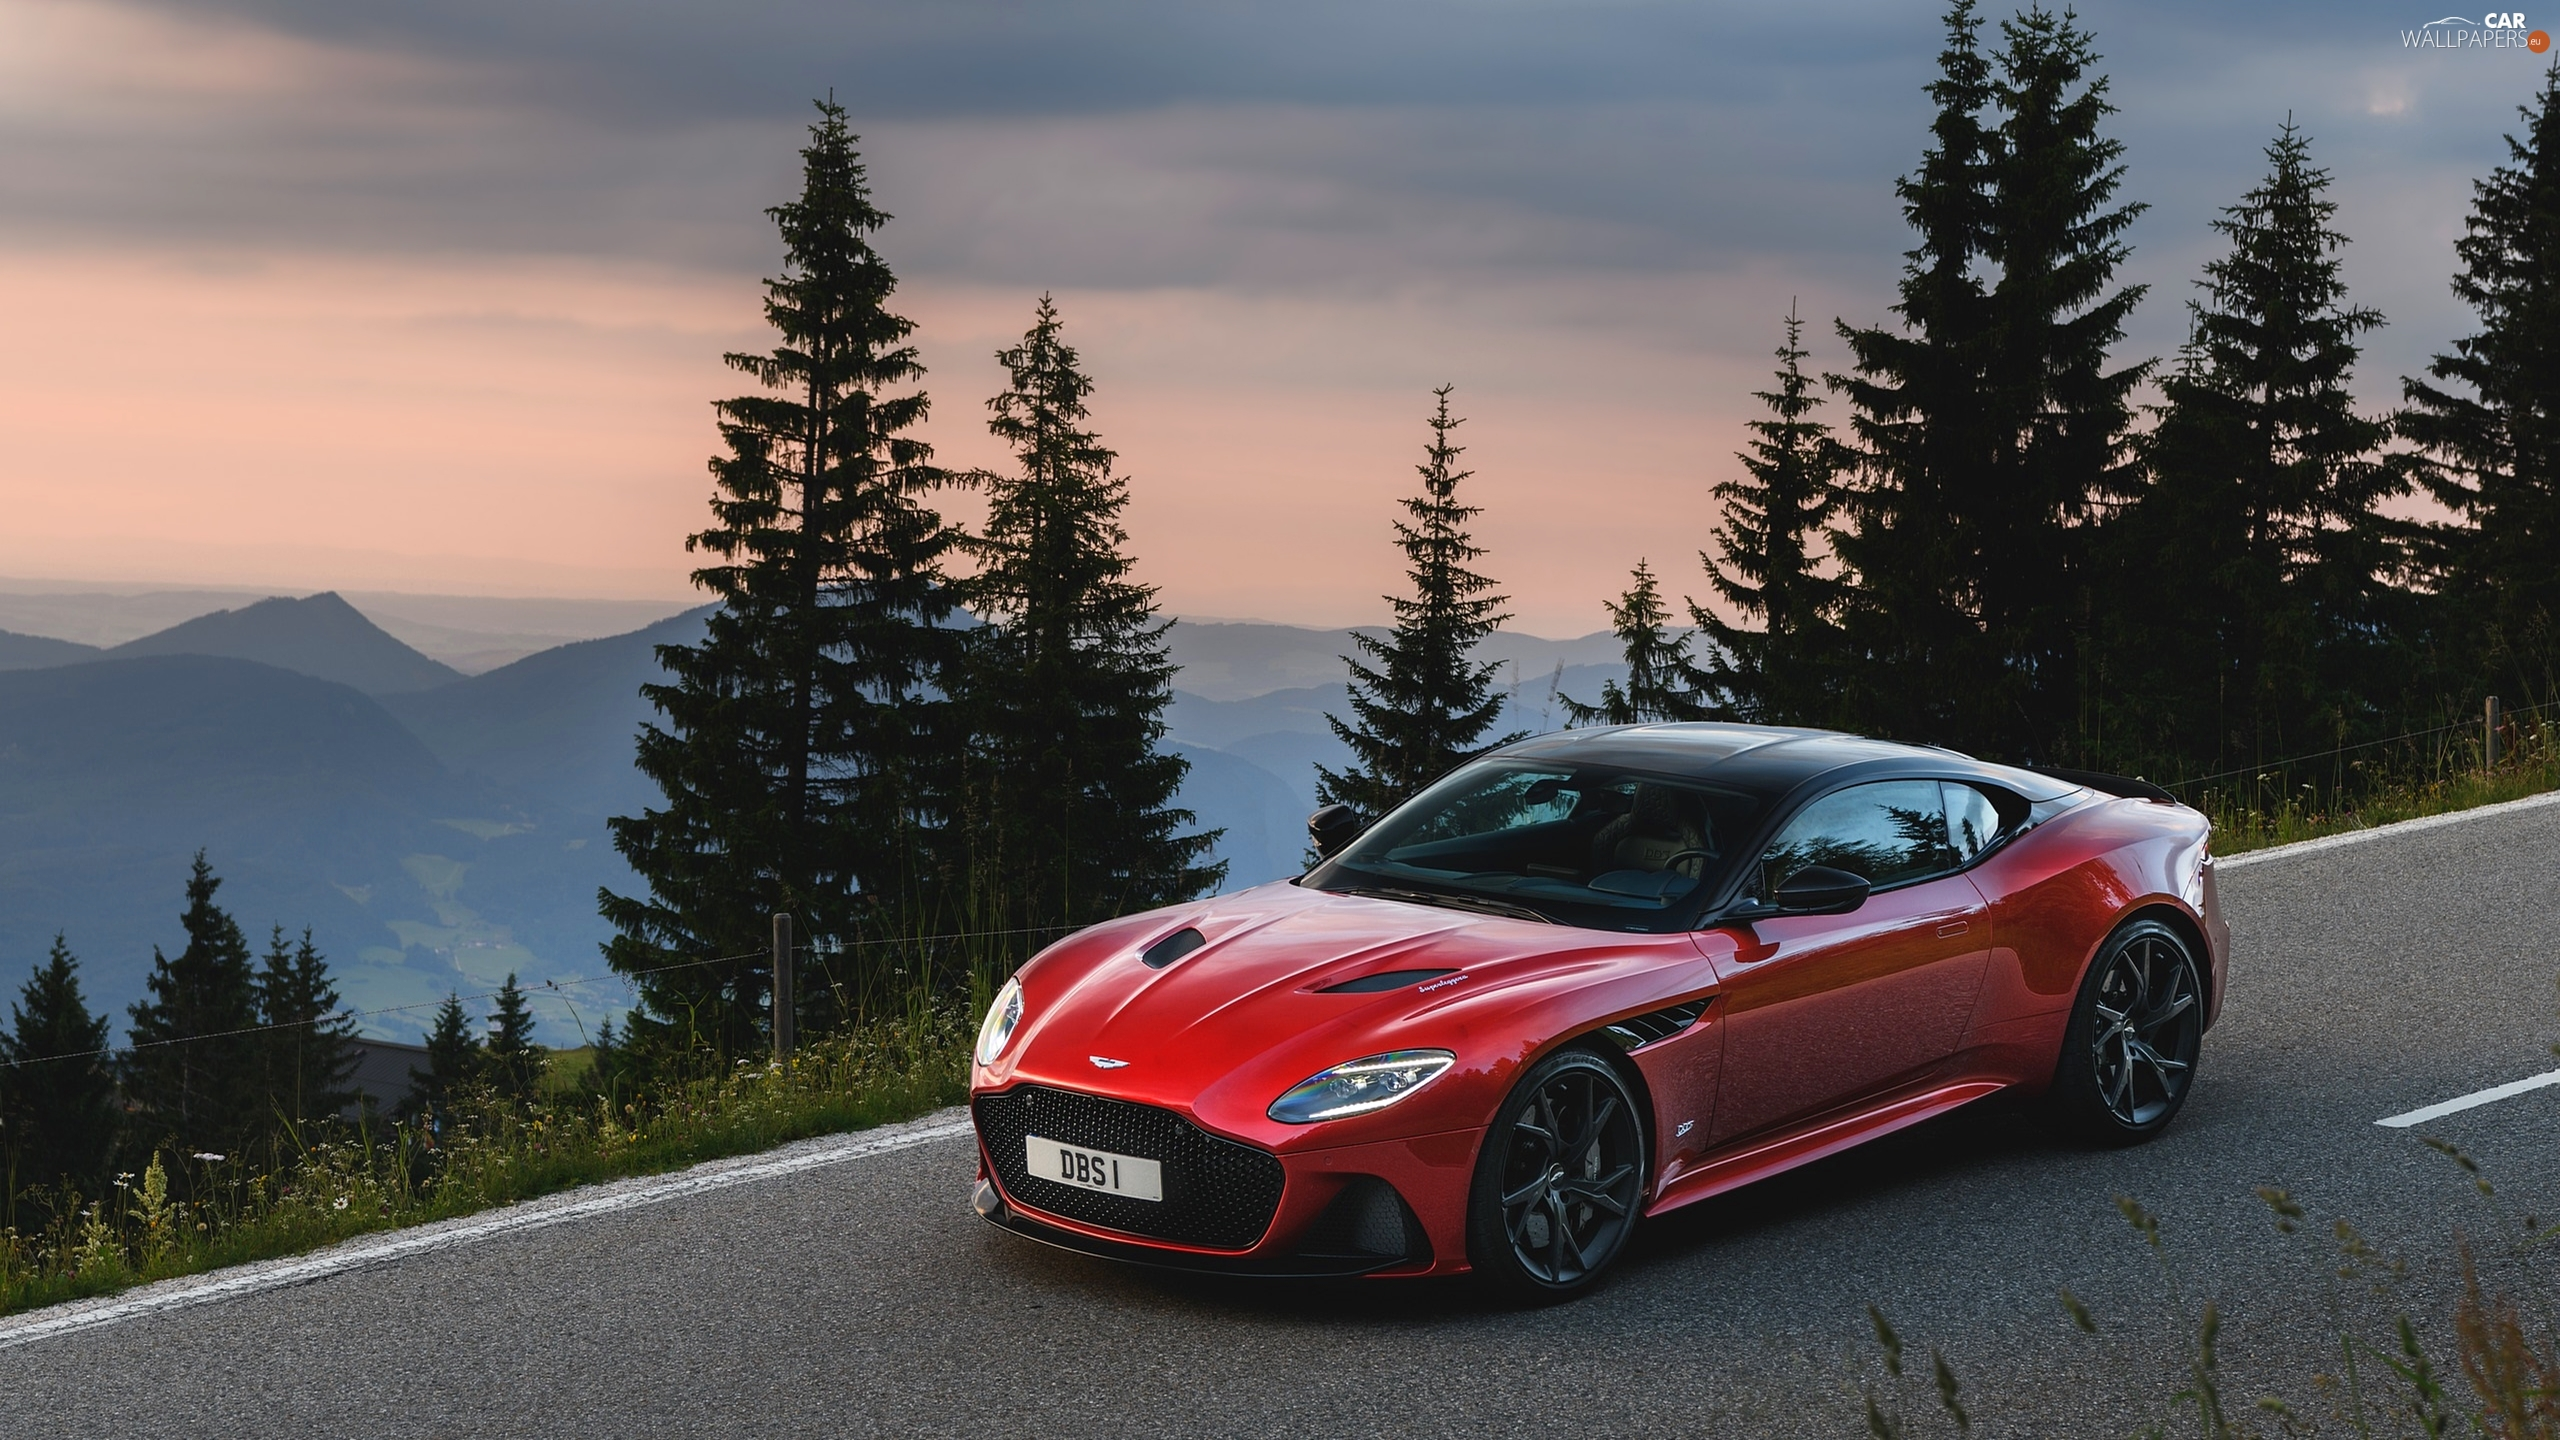 Red Superleggera Way Aston Martin Dbs Cars Wallpapers 2560x1440